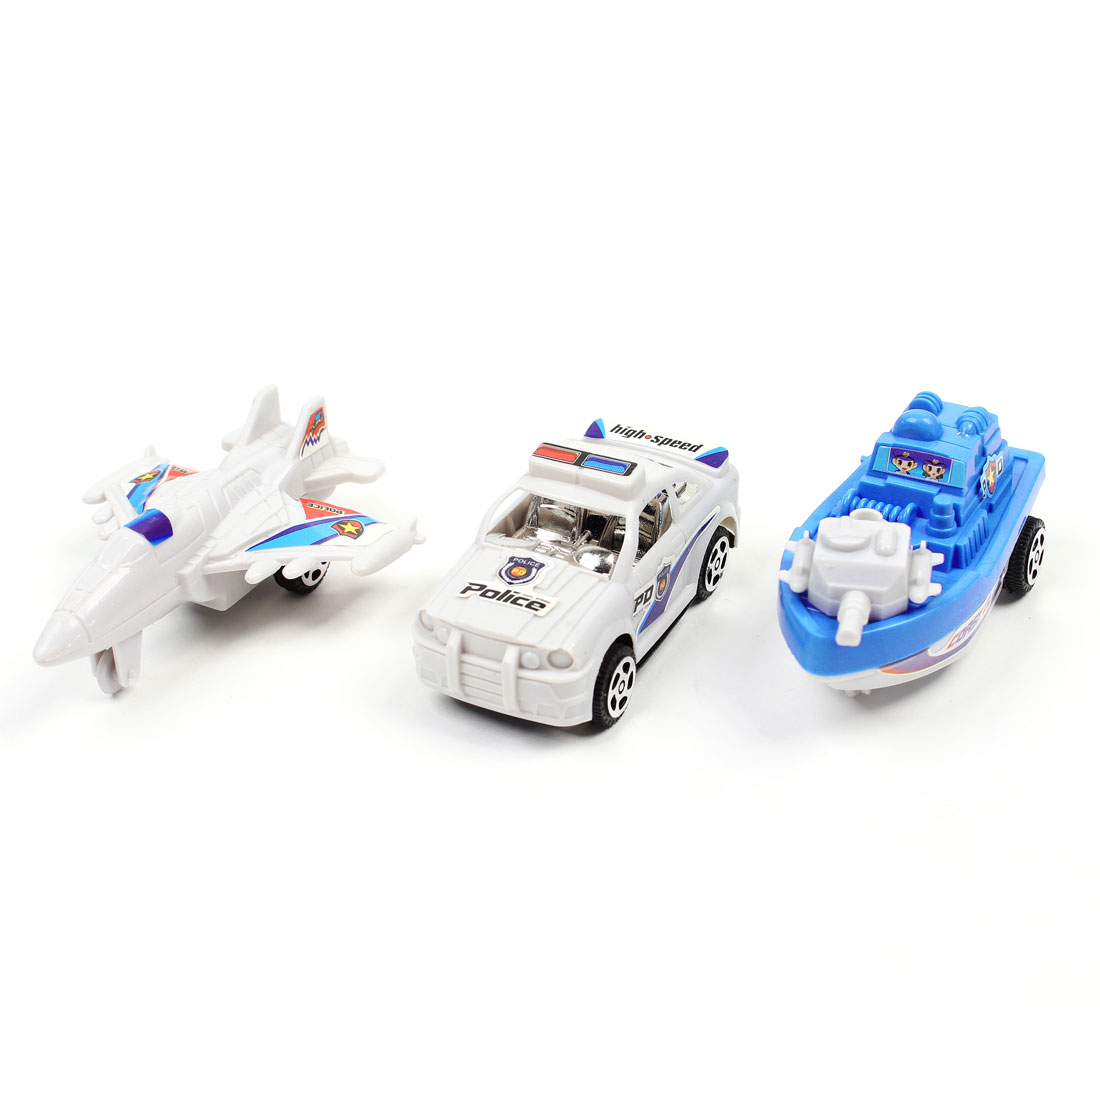 Kids Child White Sky Blue Plastic Patrol Police Car Gunboat Airplane Toy 3 in 1